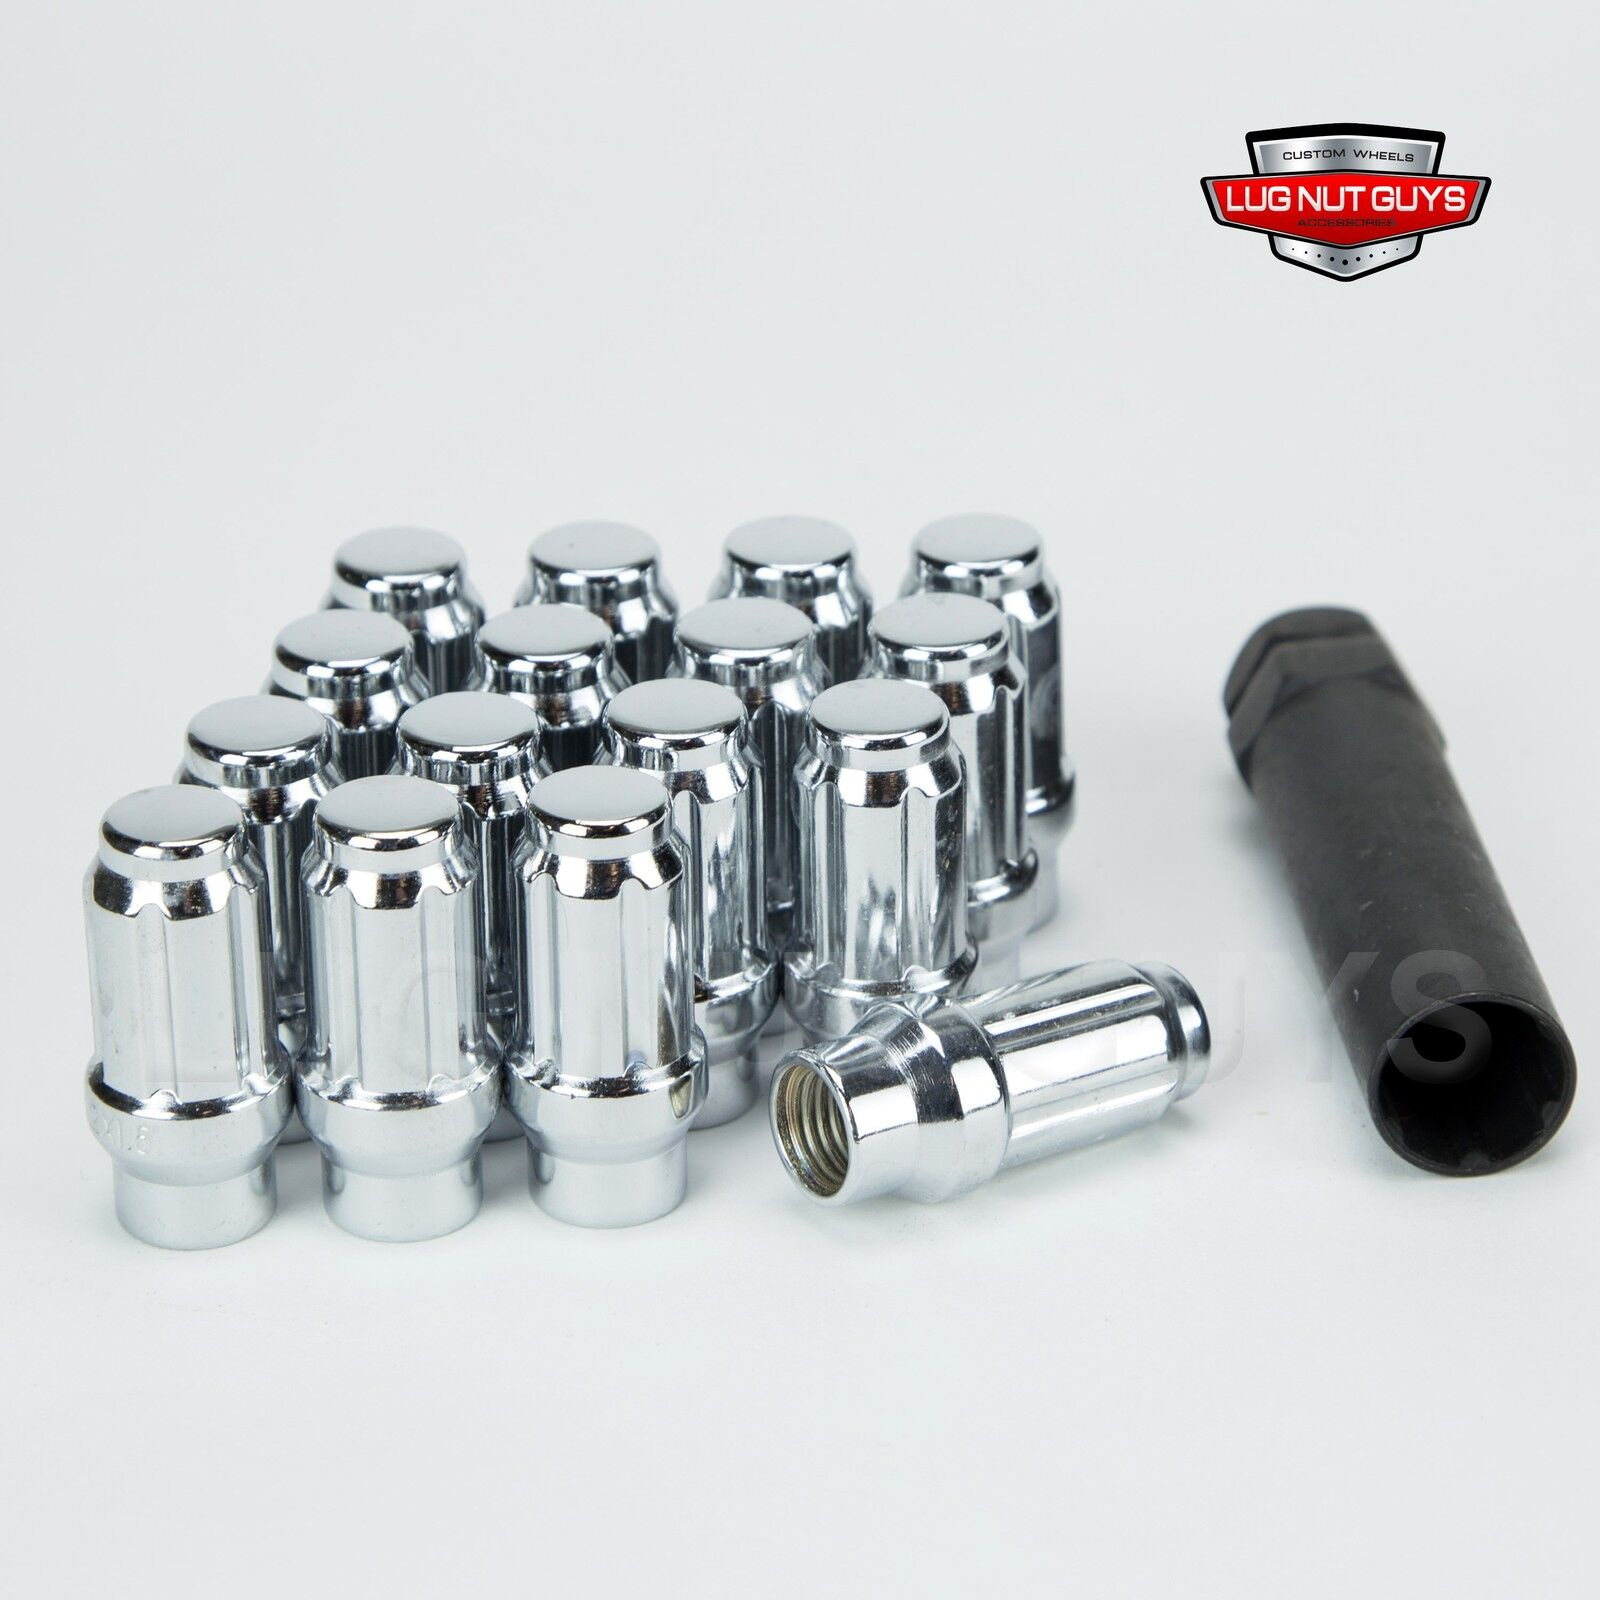 Wheel Accessories Parts Set of 20 Chrome Truck Spline M14x2.0 Bulge Acorn 1.9 Long Lug Nut Wheel Install Kit